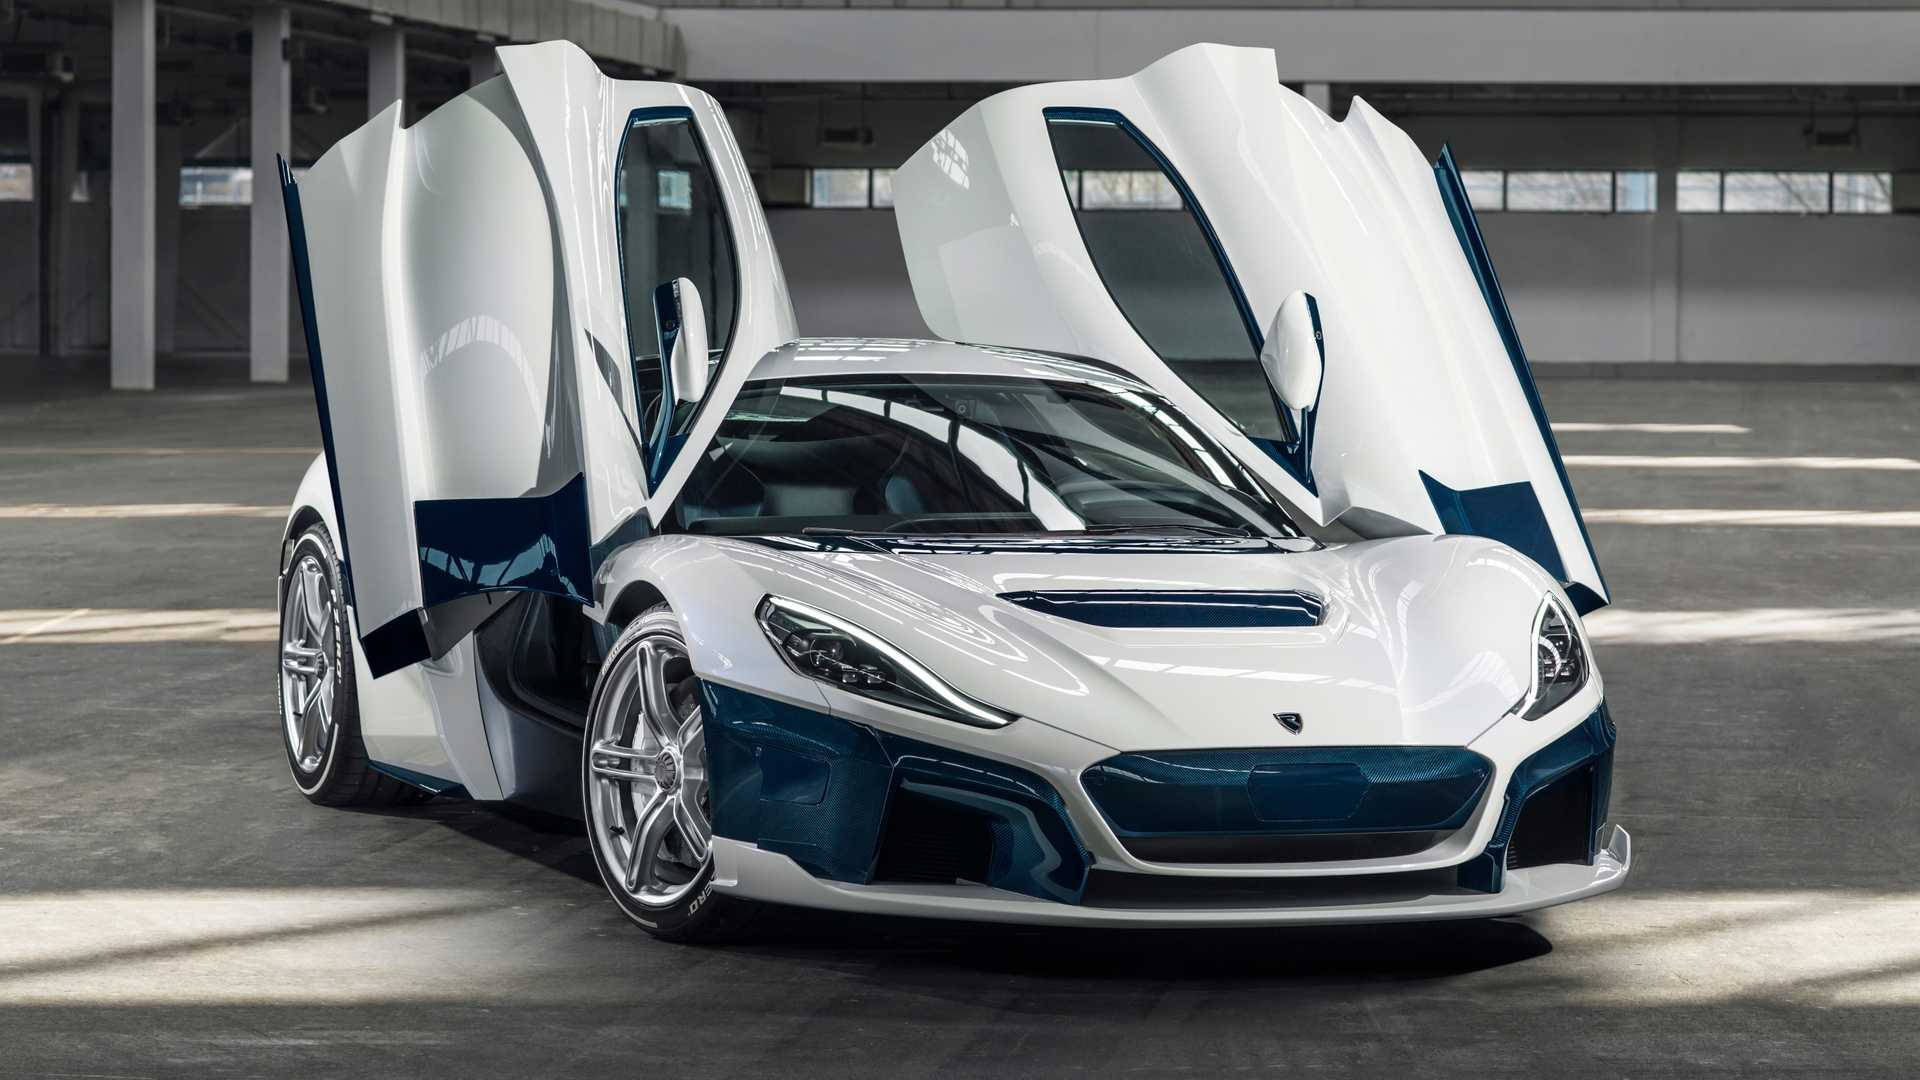 Rimac C_Two Production Model Could Have Even Better Specs